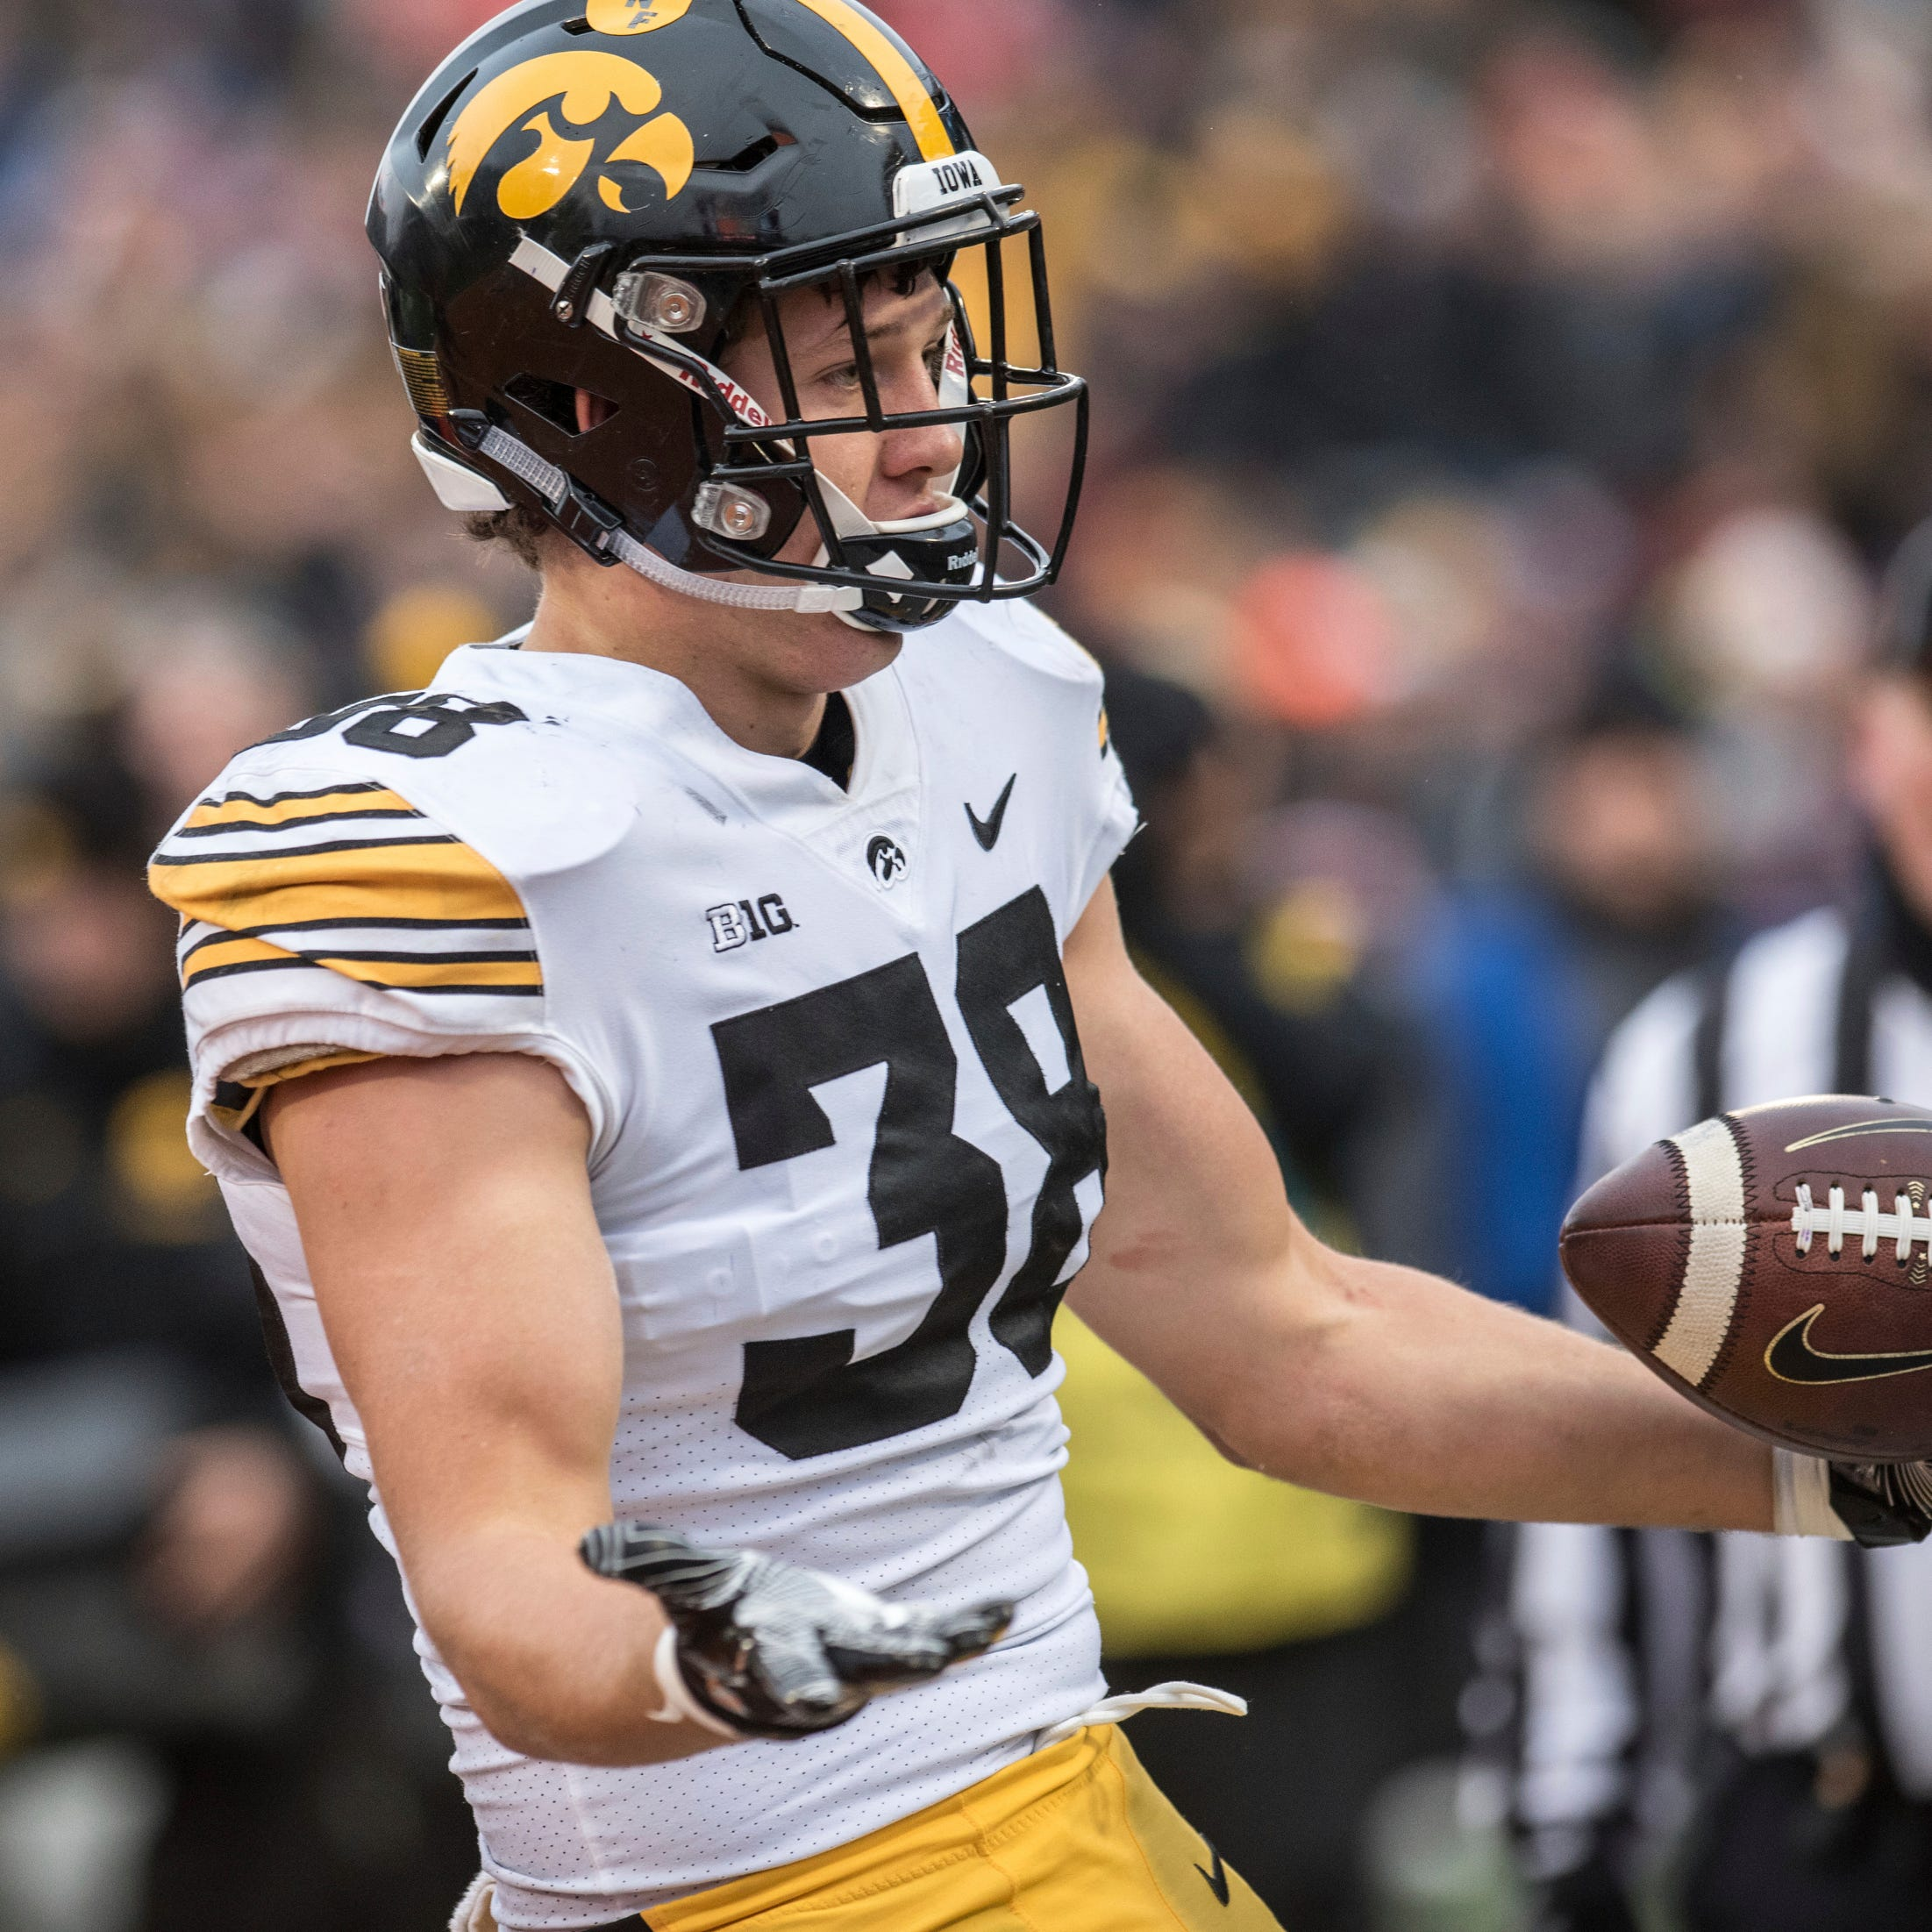 Iowa tight end T.J. Hockenson has a good chance at winning Mackey Award